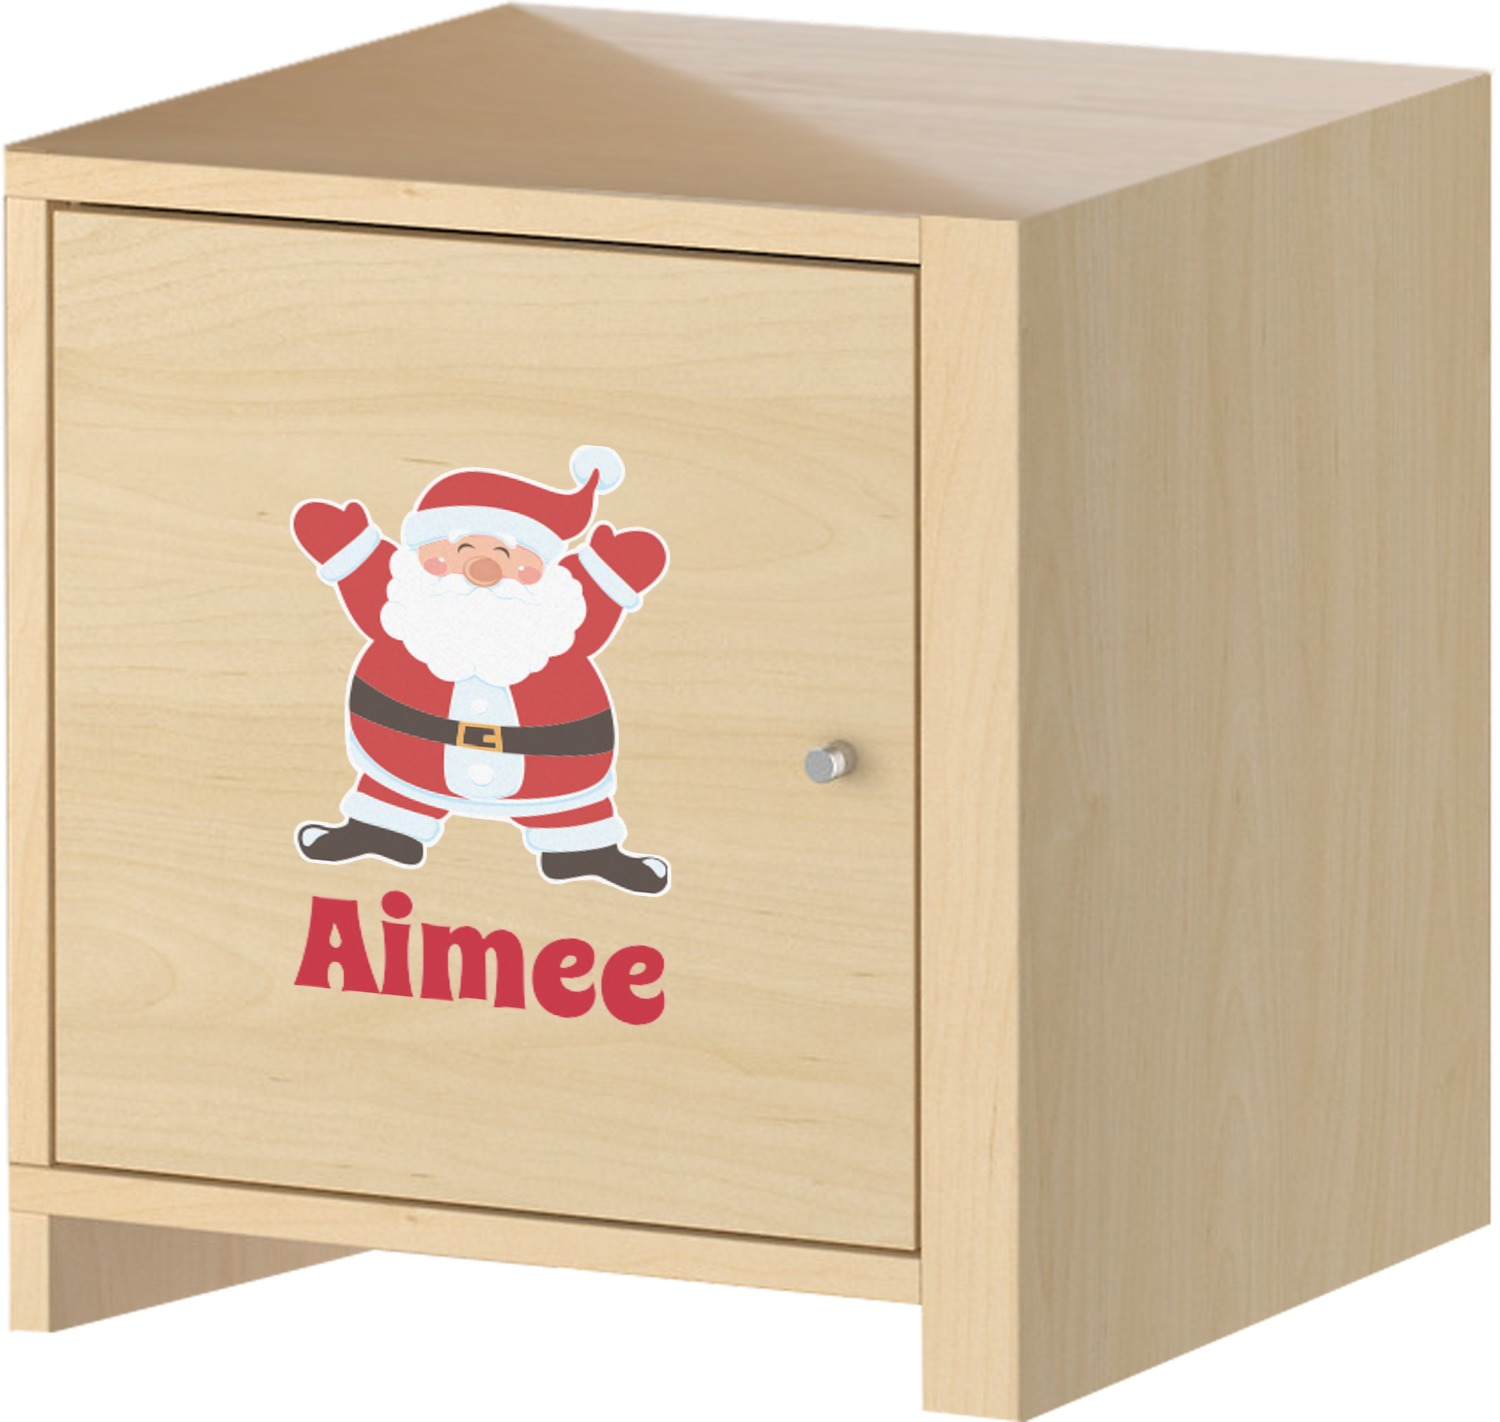 santa claus graphic decal custom sized personalized With kitchen cabinets lowes with santa claus wall art